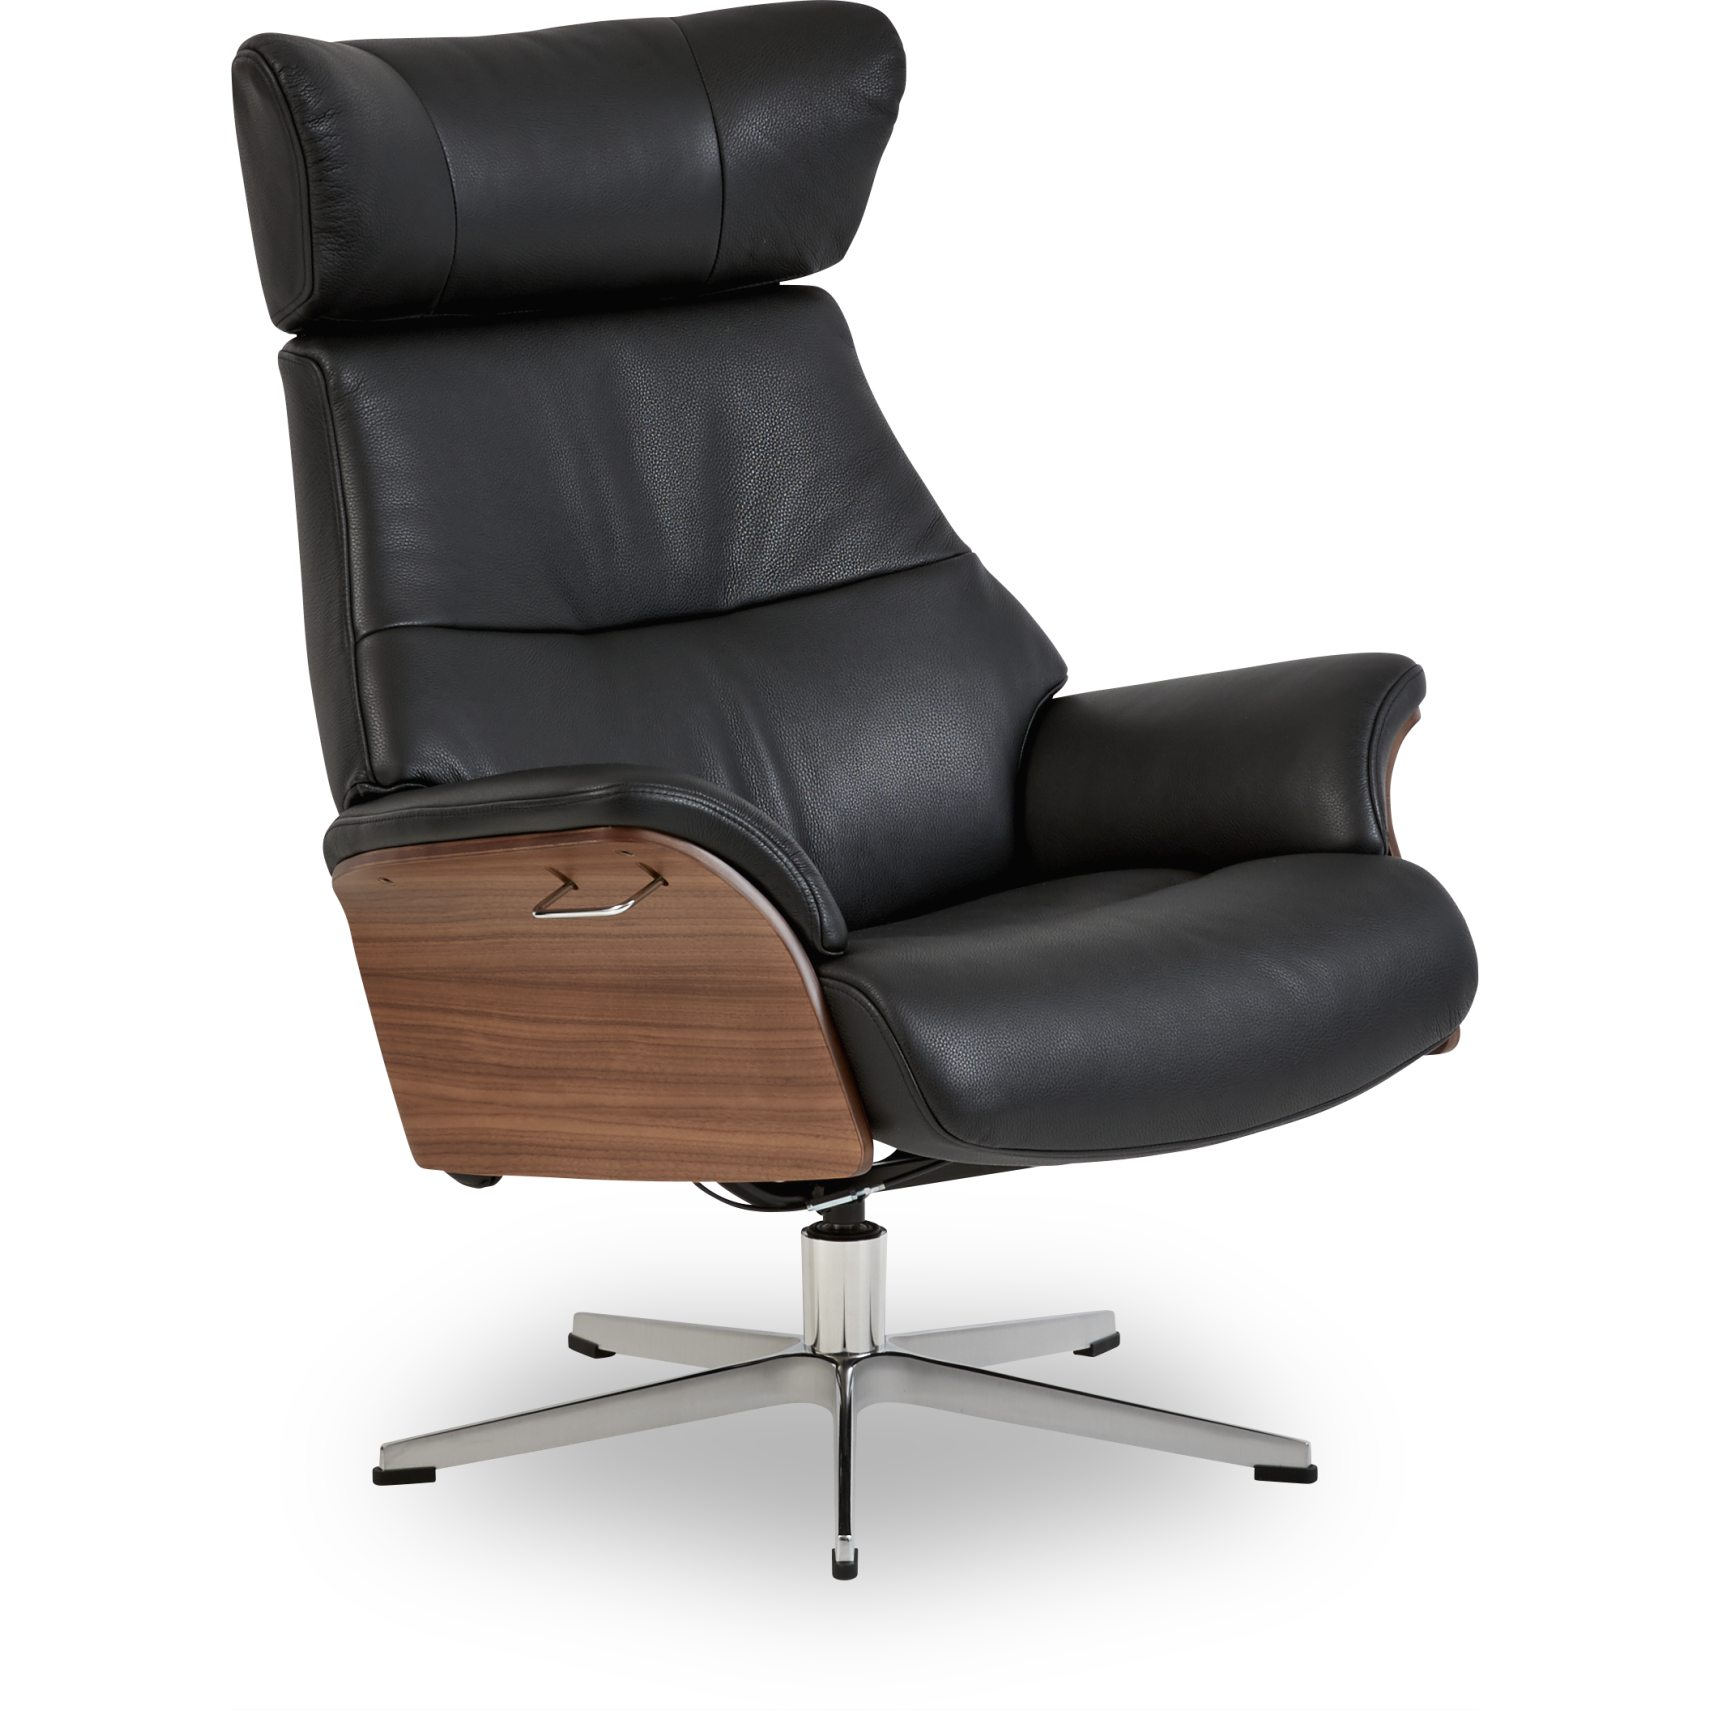 Air Fåtölj - Fantasty 2514-89 black läder, armrest in walnut och fot i aluminium